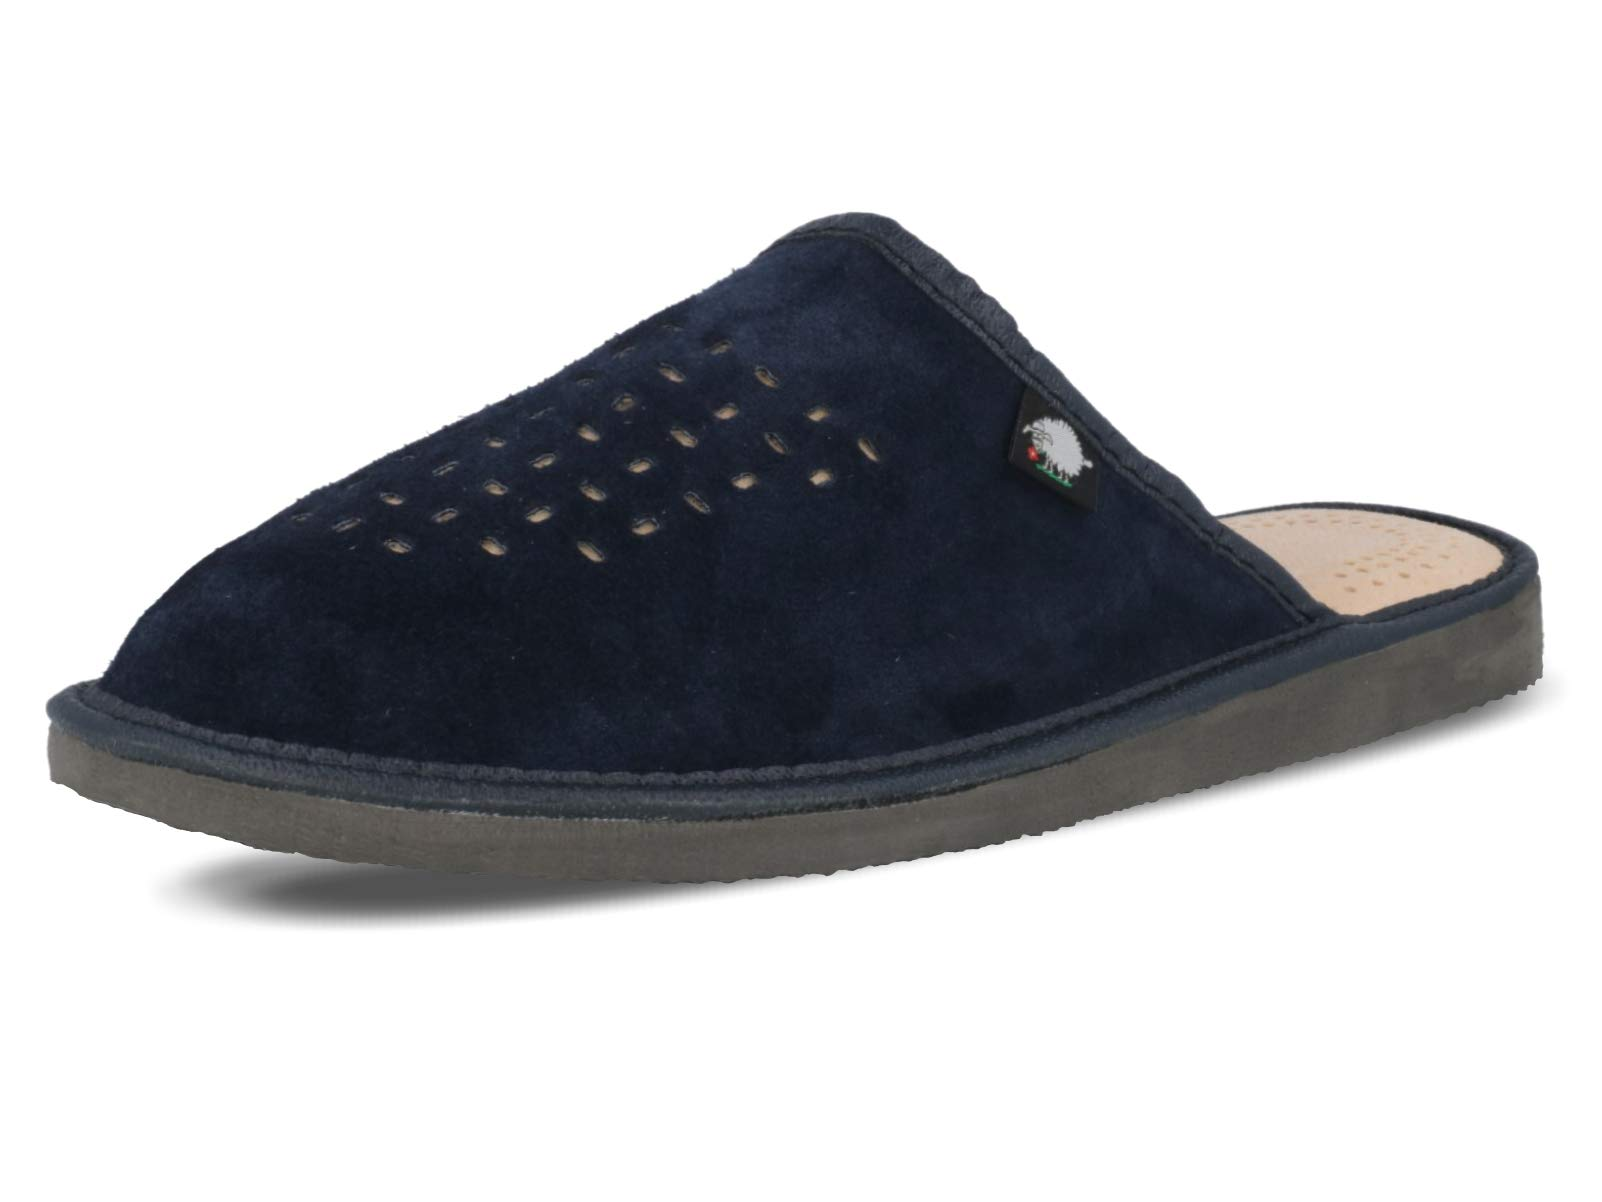 4ae4c2a49f0 Best Rated in Men s Slippers   Helpful Customer Reviews - Amazon.co.uk